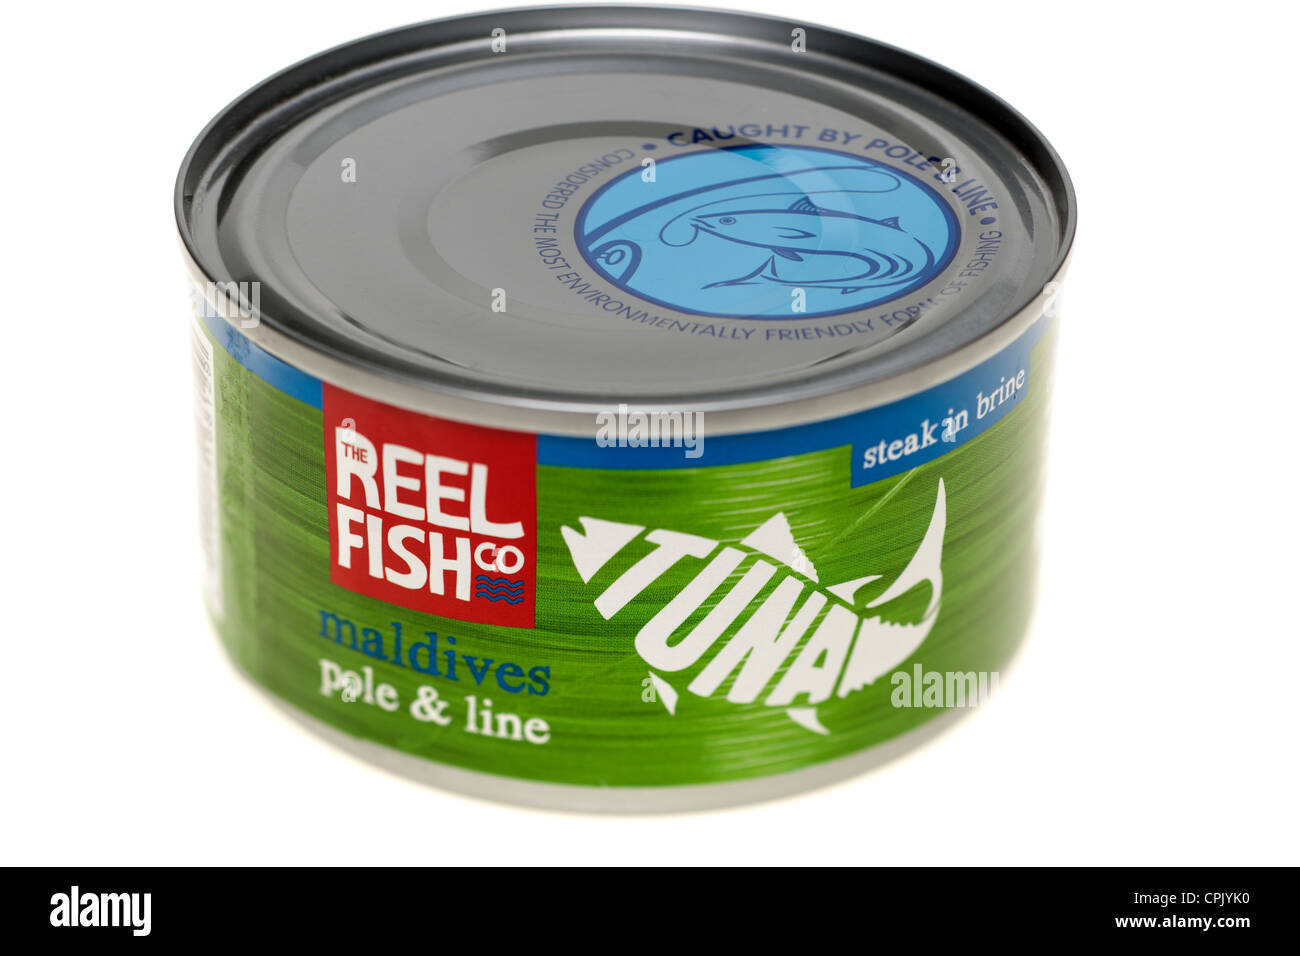 A tin of The reel fish co environmentally friendly pole and line caught tuna steak from the Maldives - Stock Image